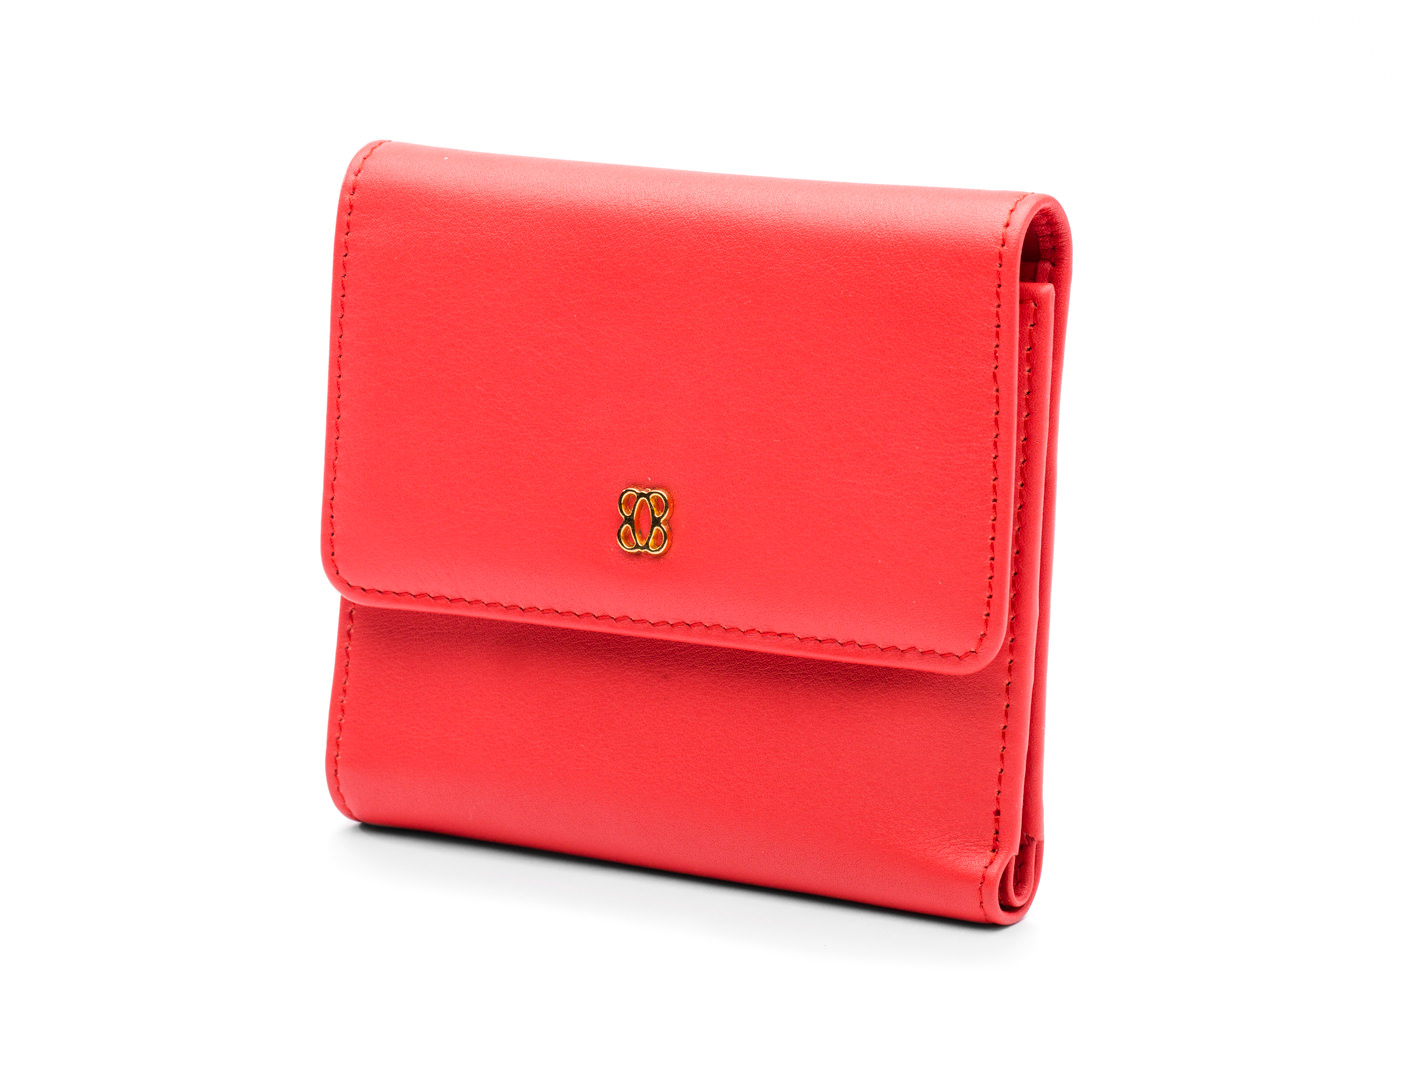 Coral Small Wallet-611 Coral - 611 Coral